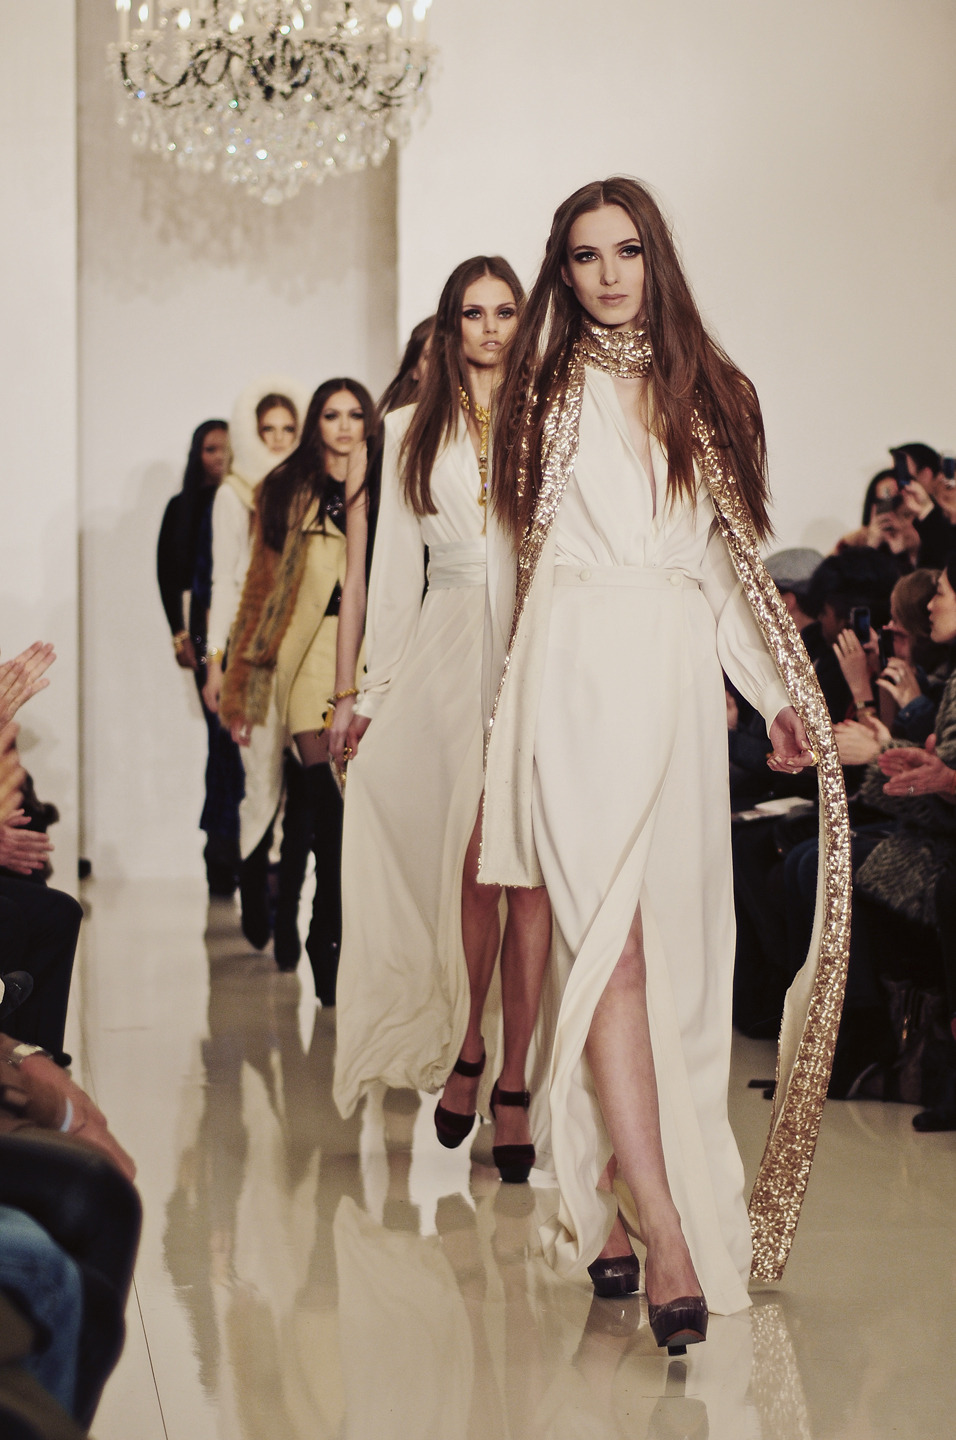 Rachel Zoe runway show @ the Empire Hotel